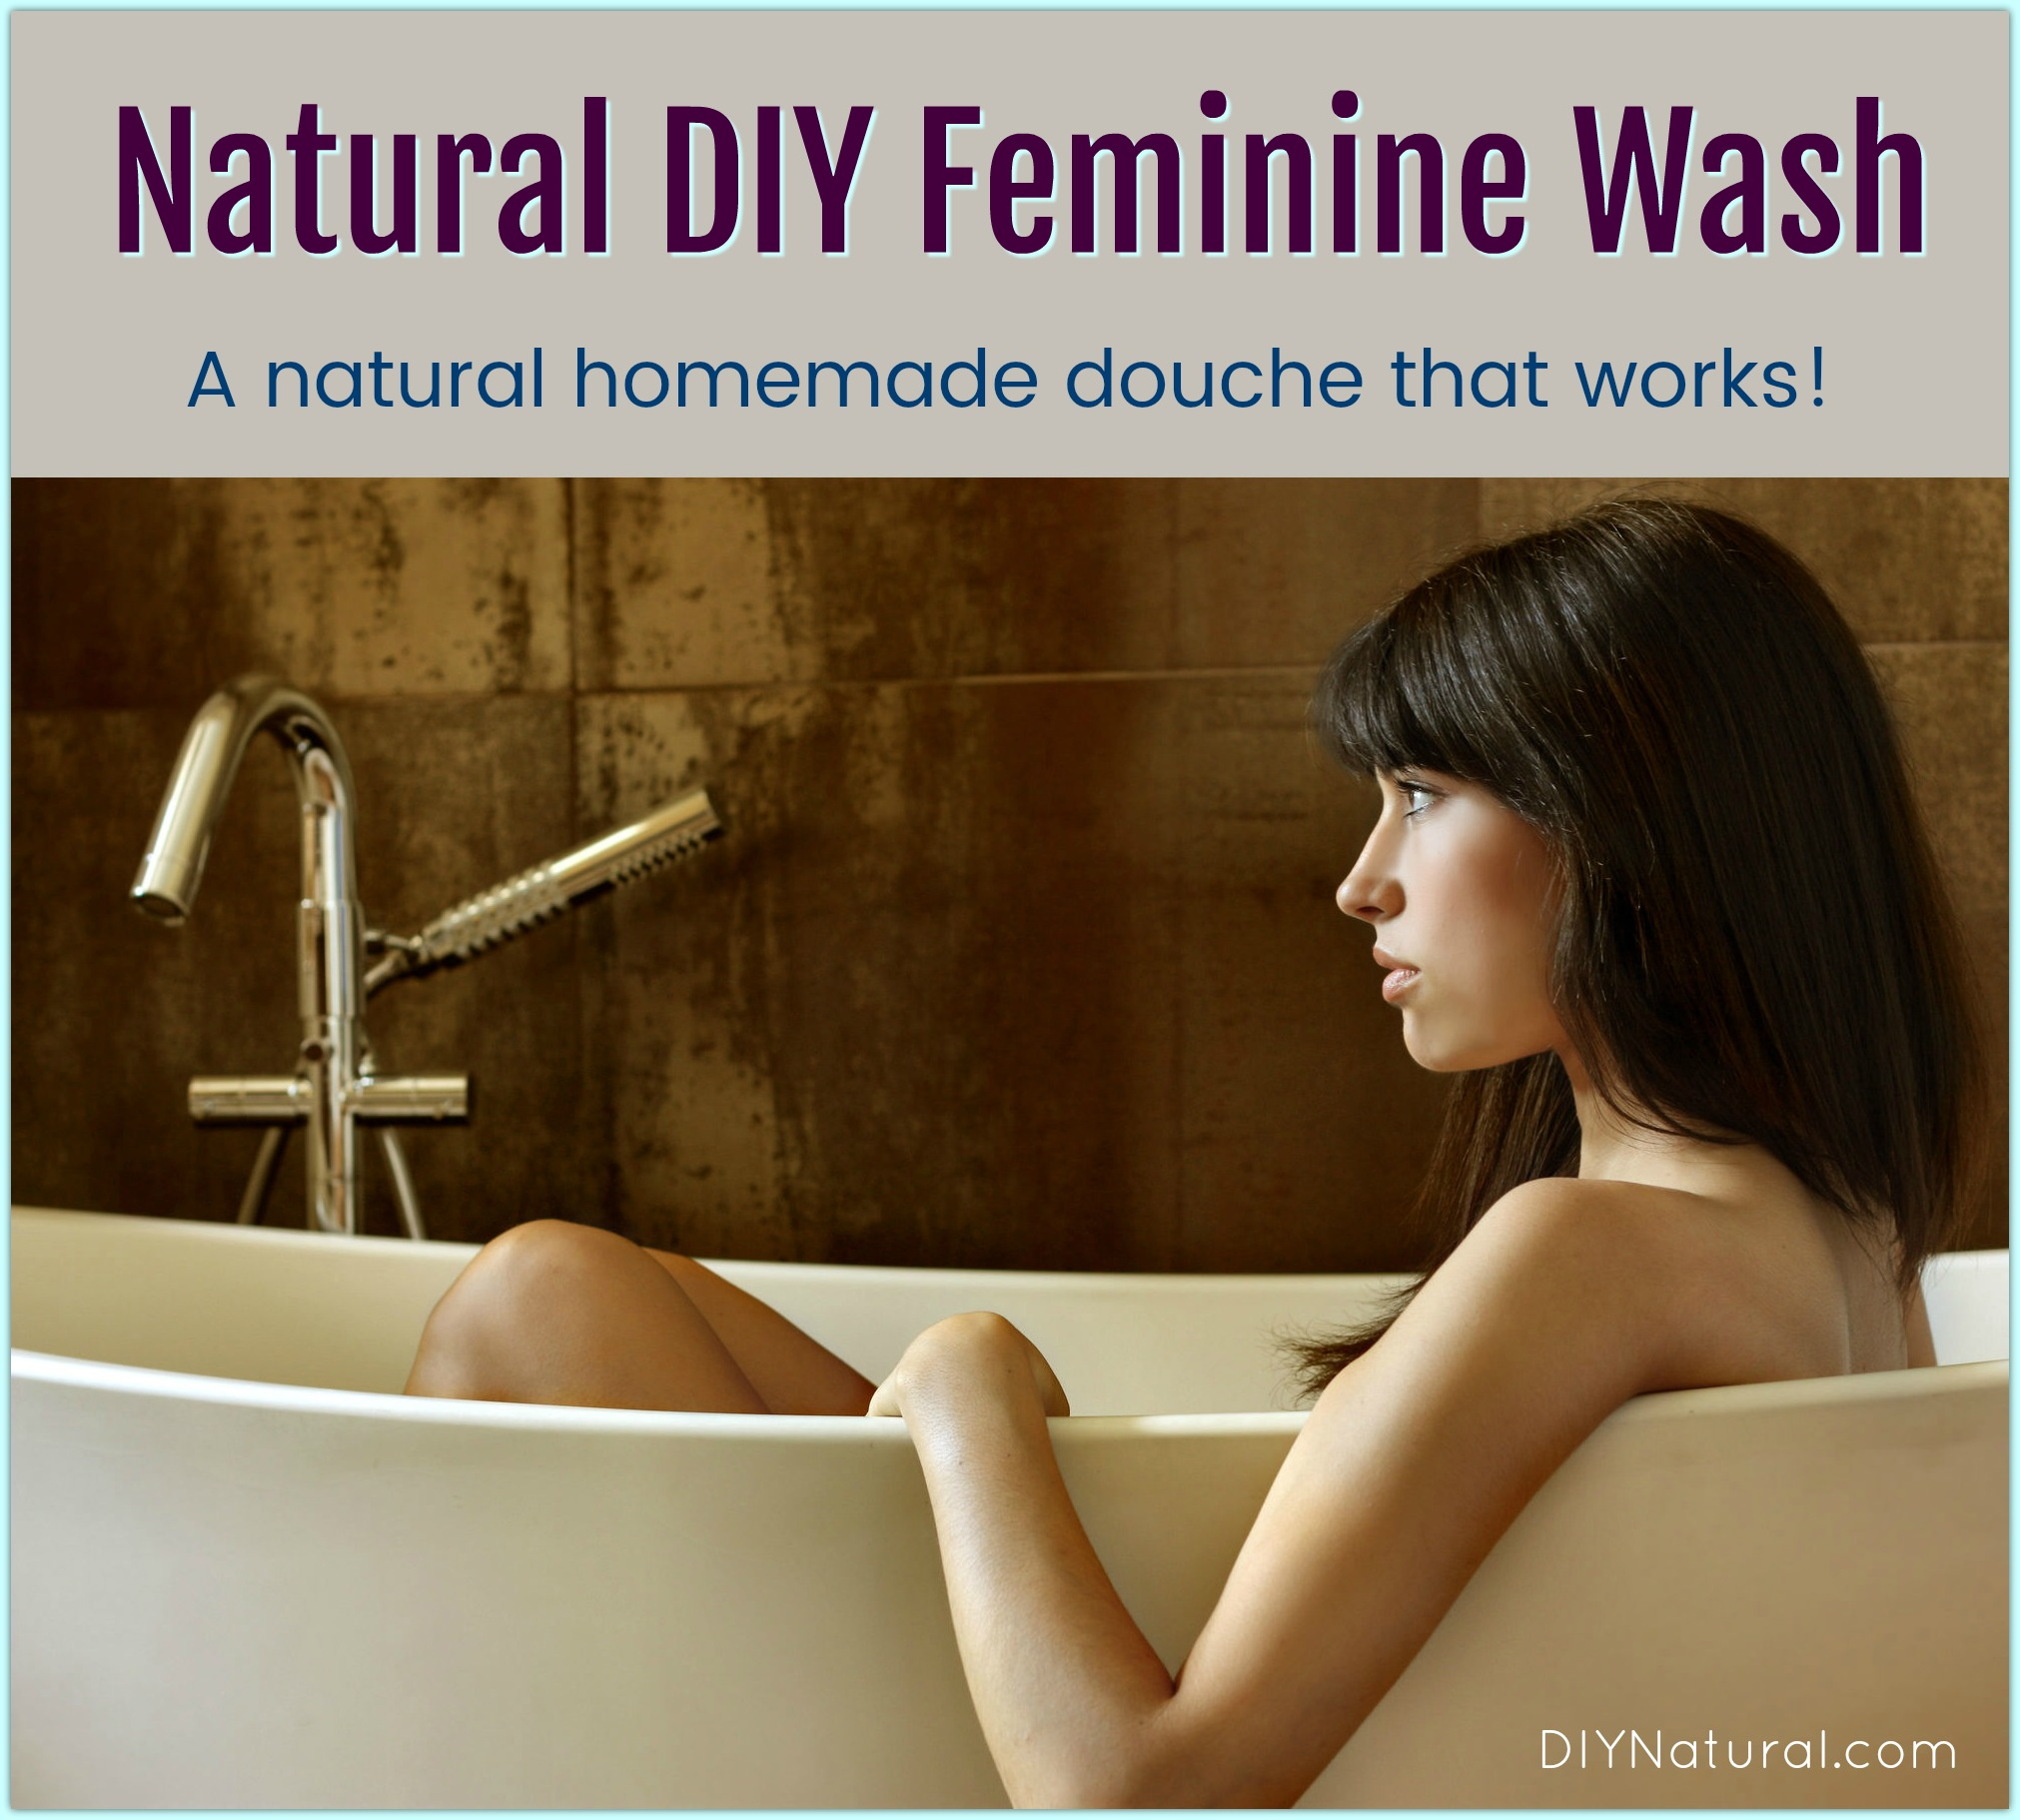 DIY Feminine Wash: How to Make Your Own Natural Homemade Douche